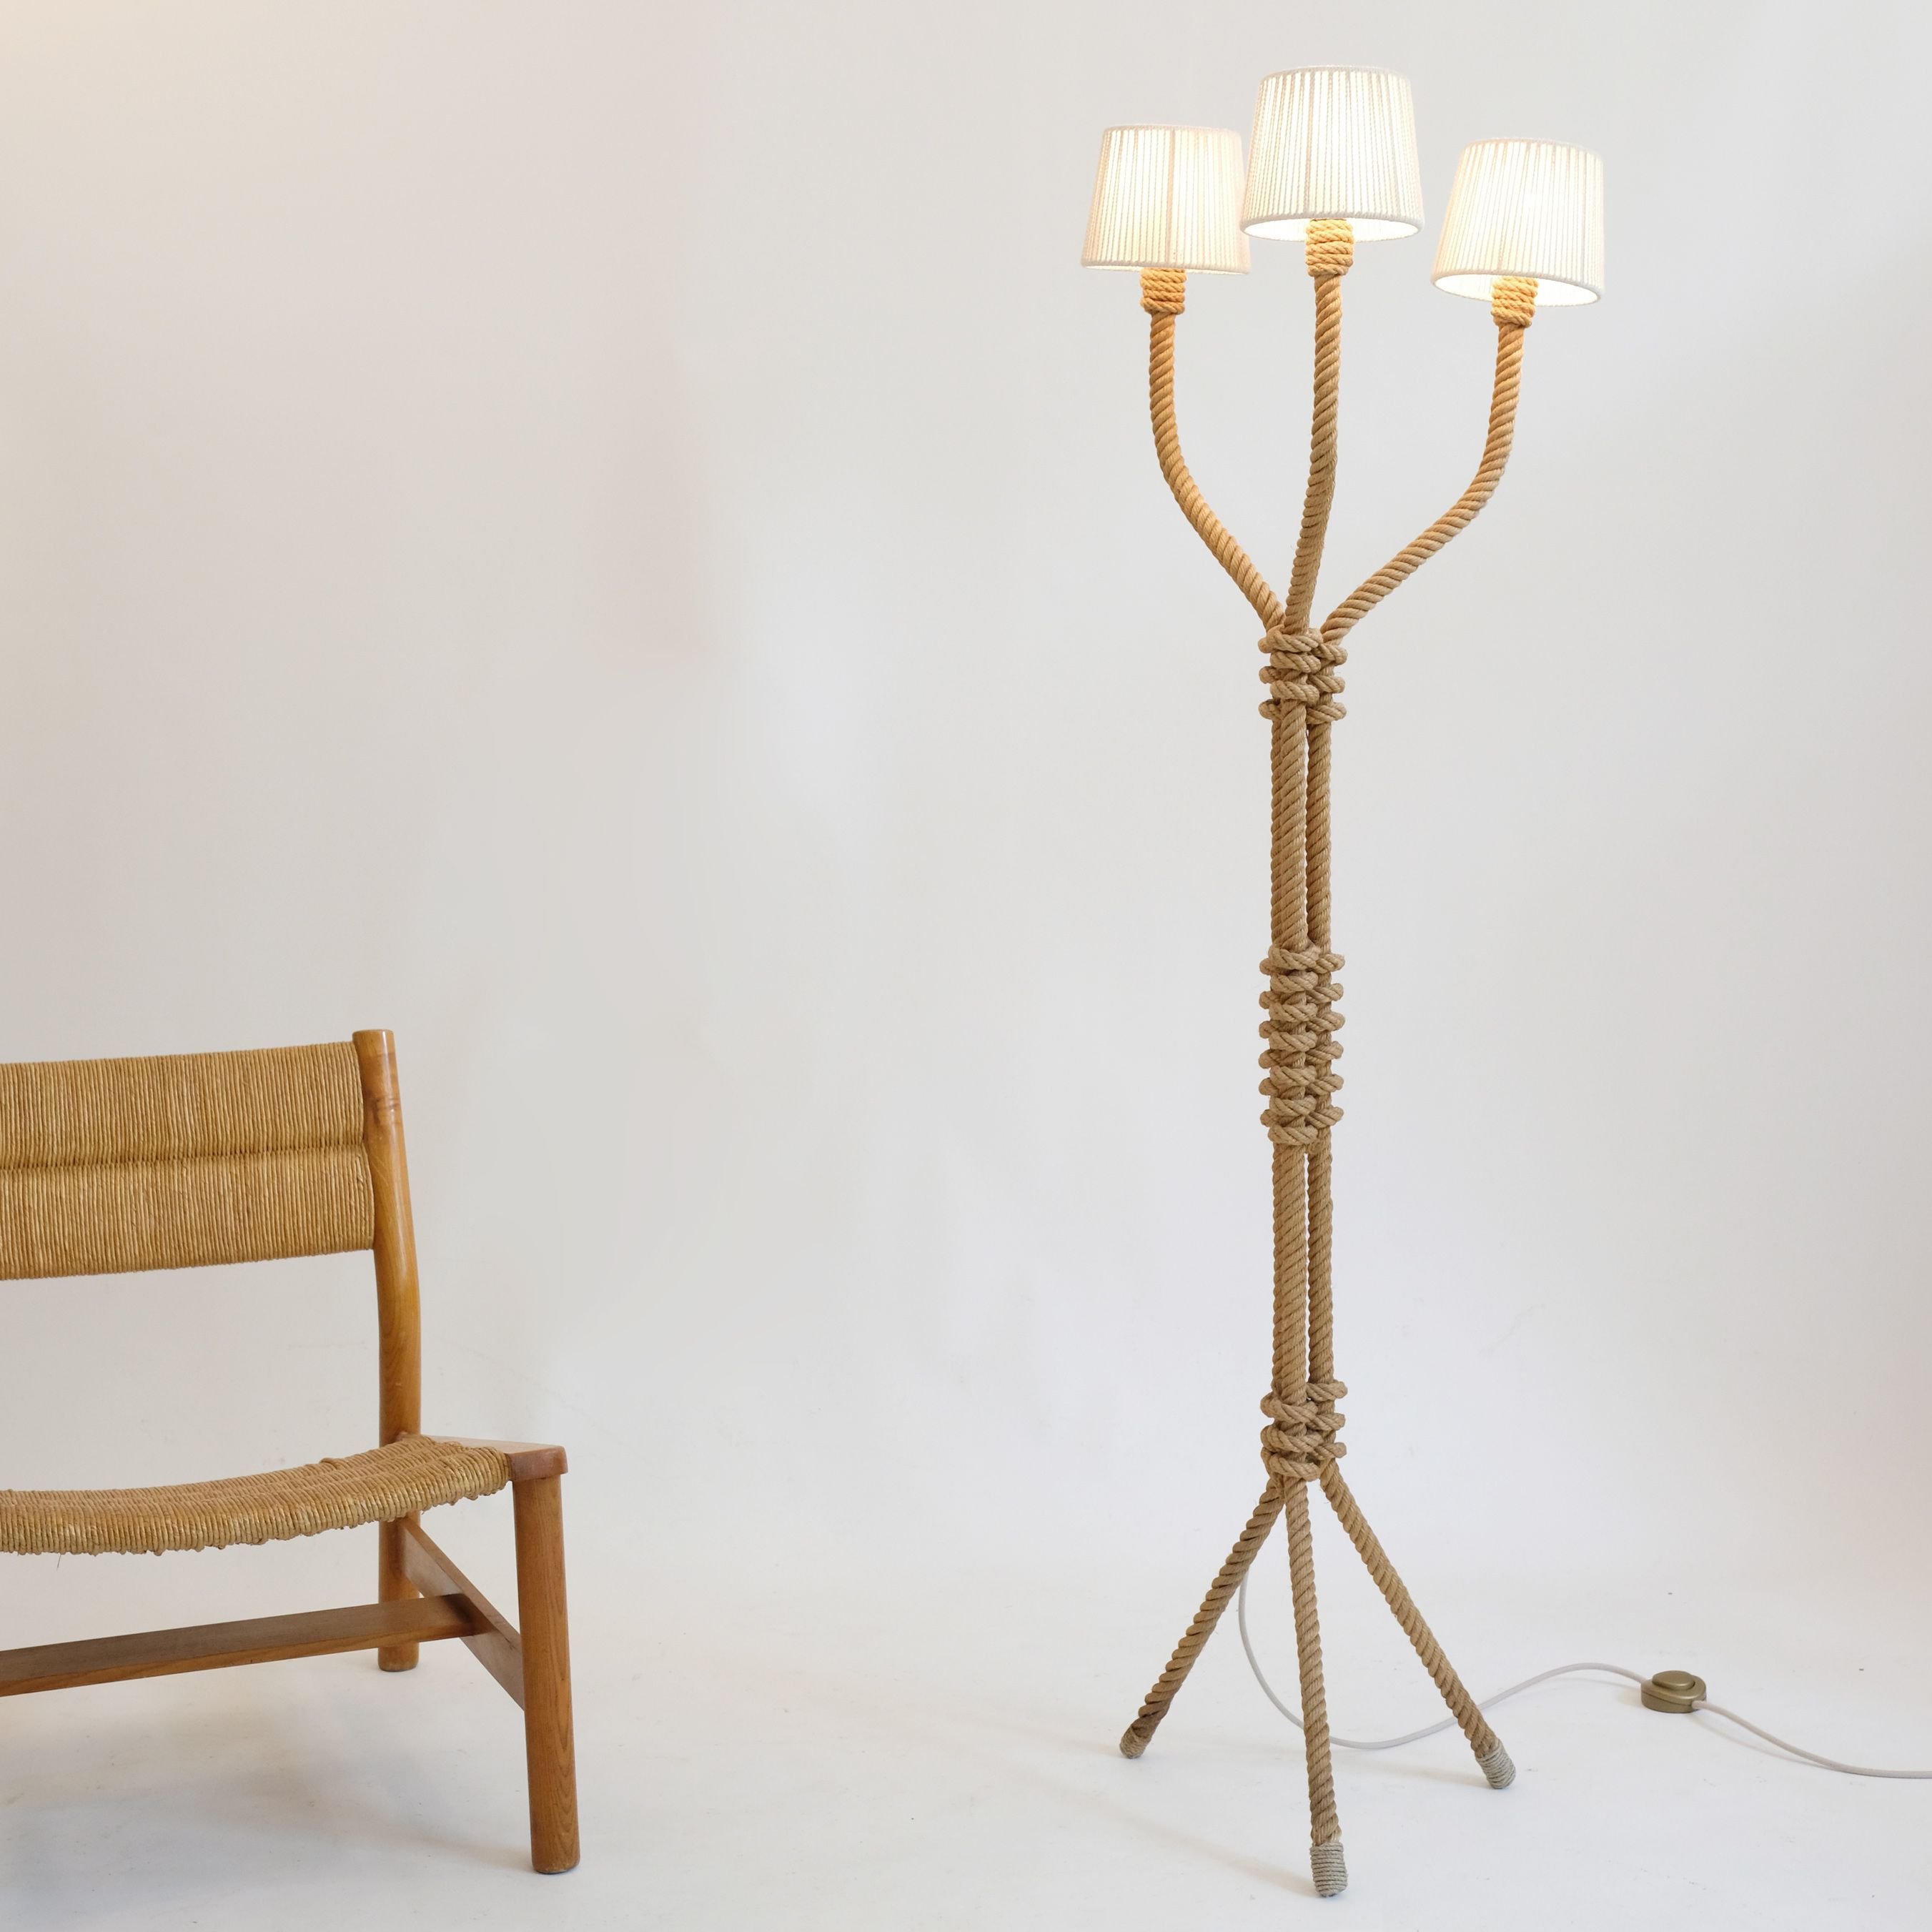 French Rope Floor Lamp From The 1940s 1950s Lampandco French Floor Lamp Floor Lamp Lamp